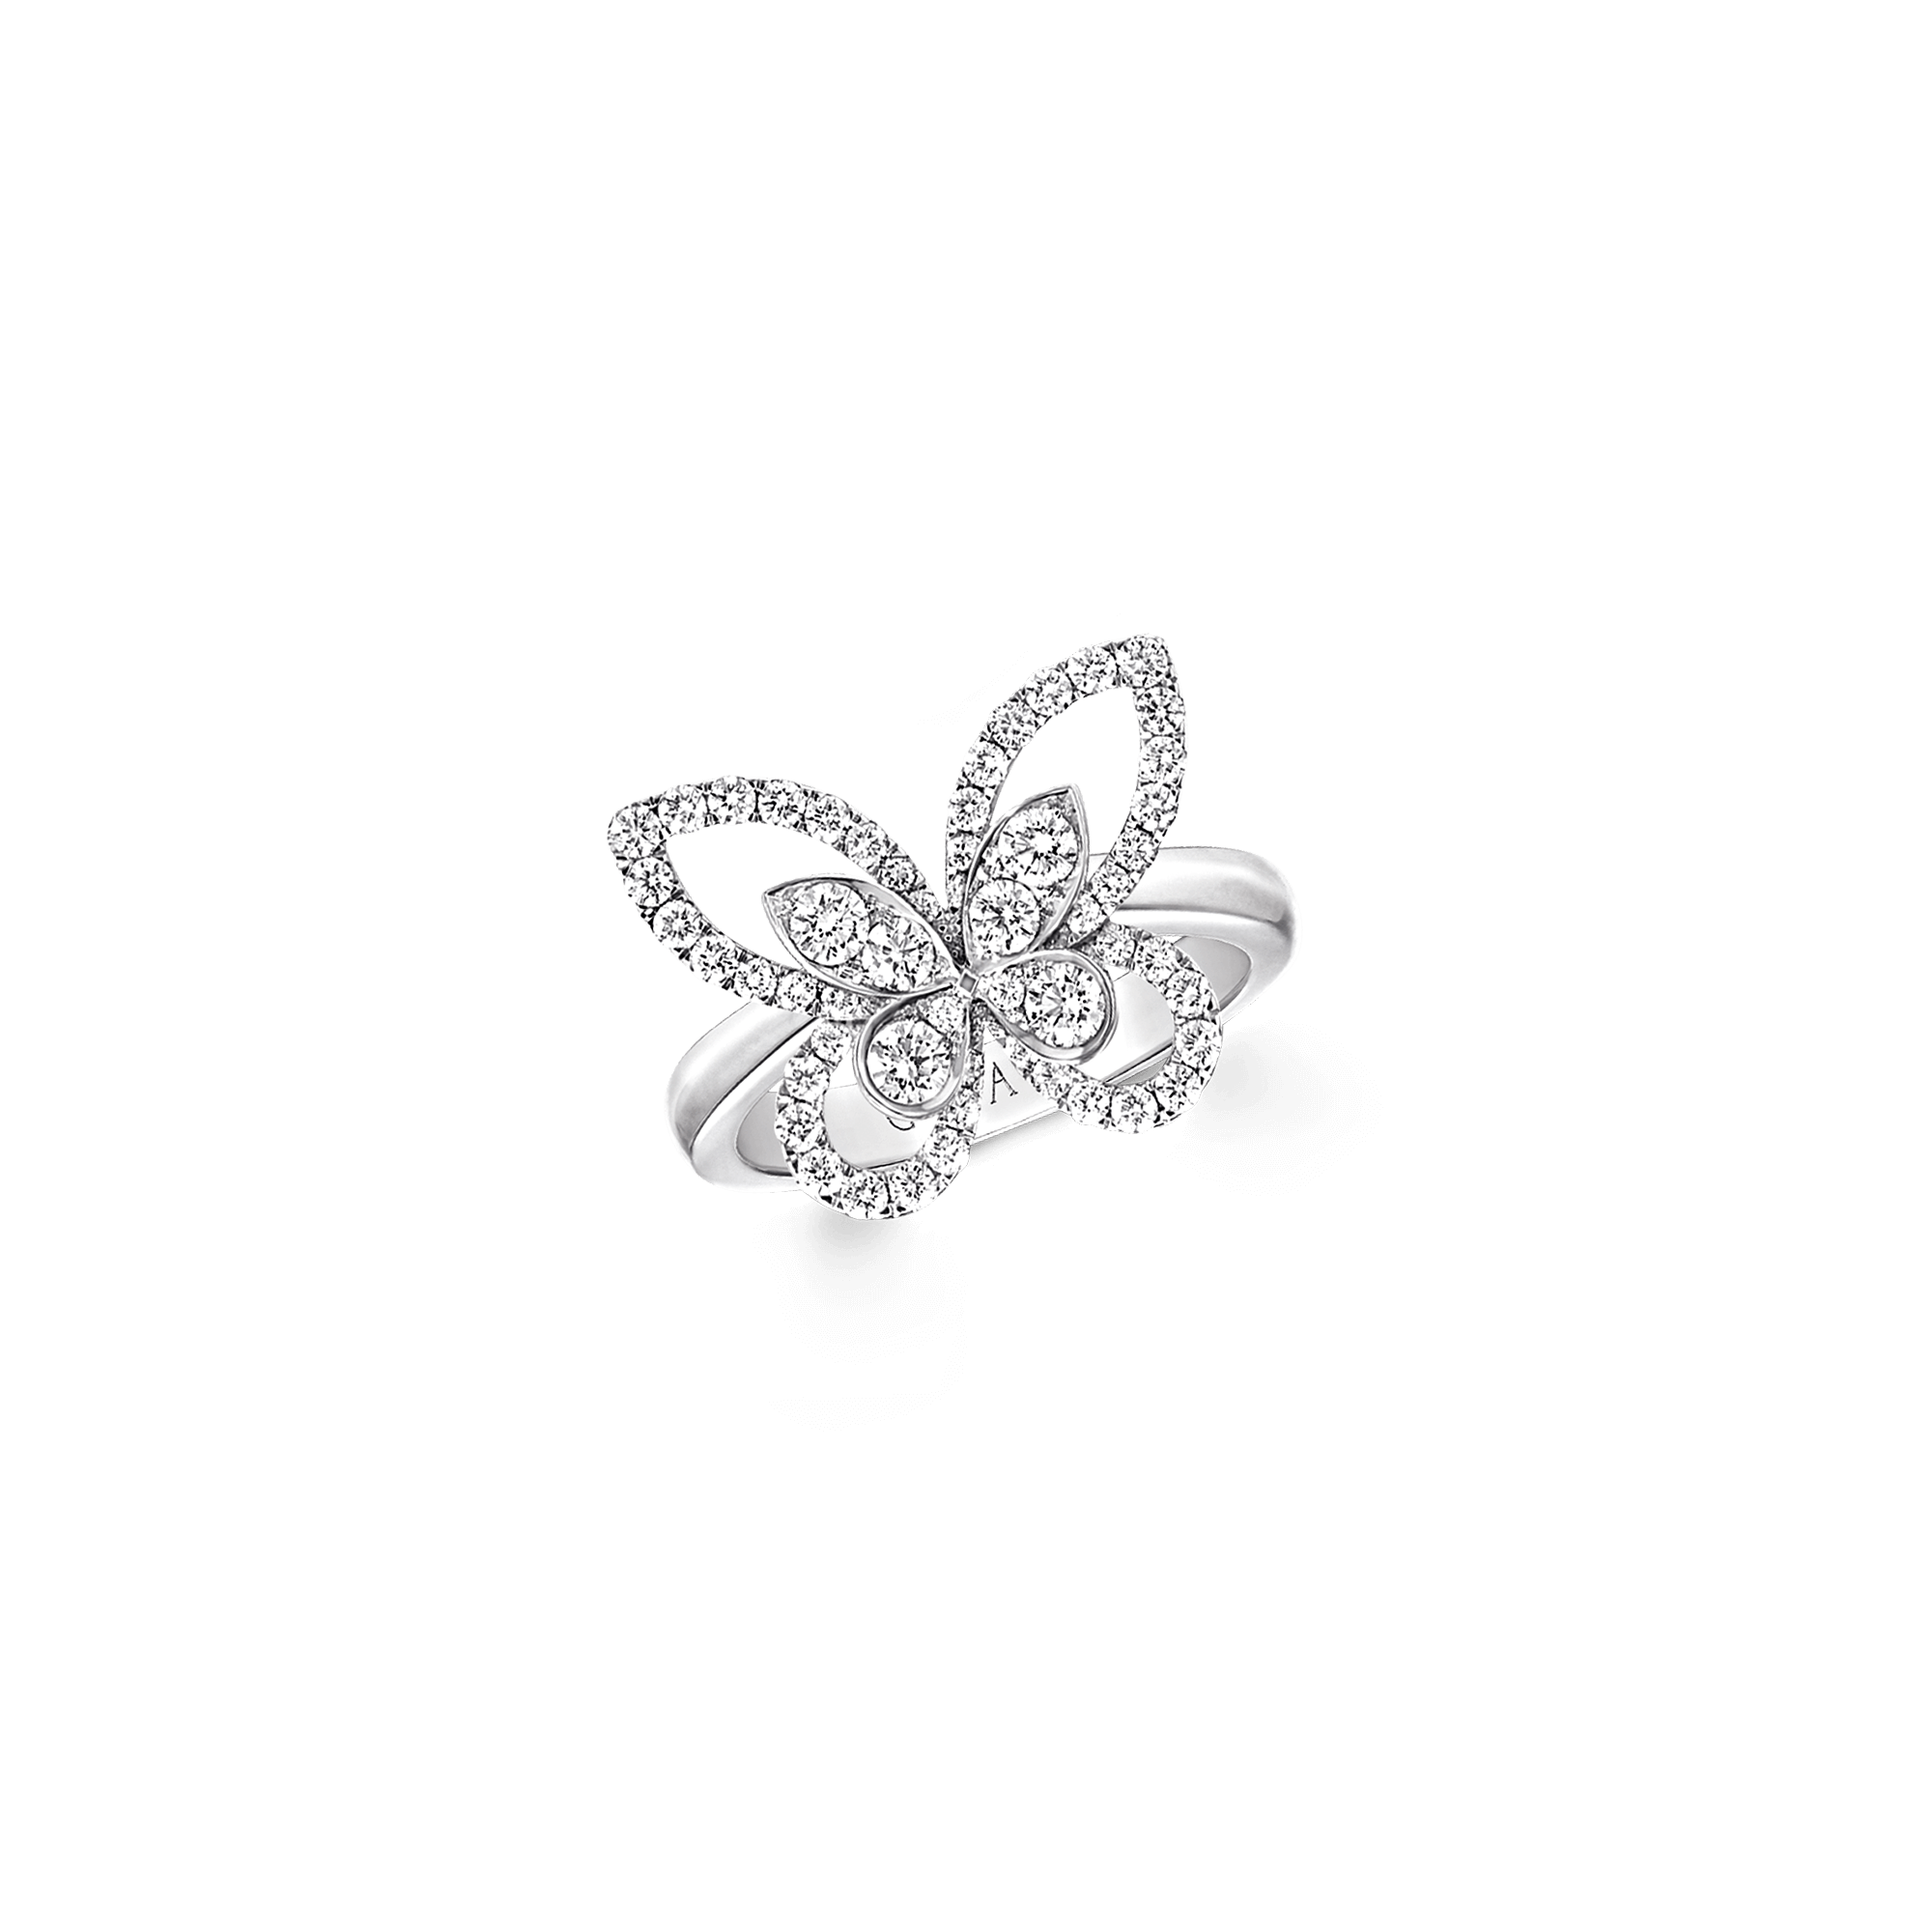 Ring Butterfly Silhouette